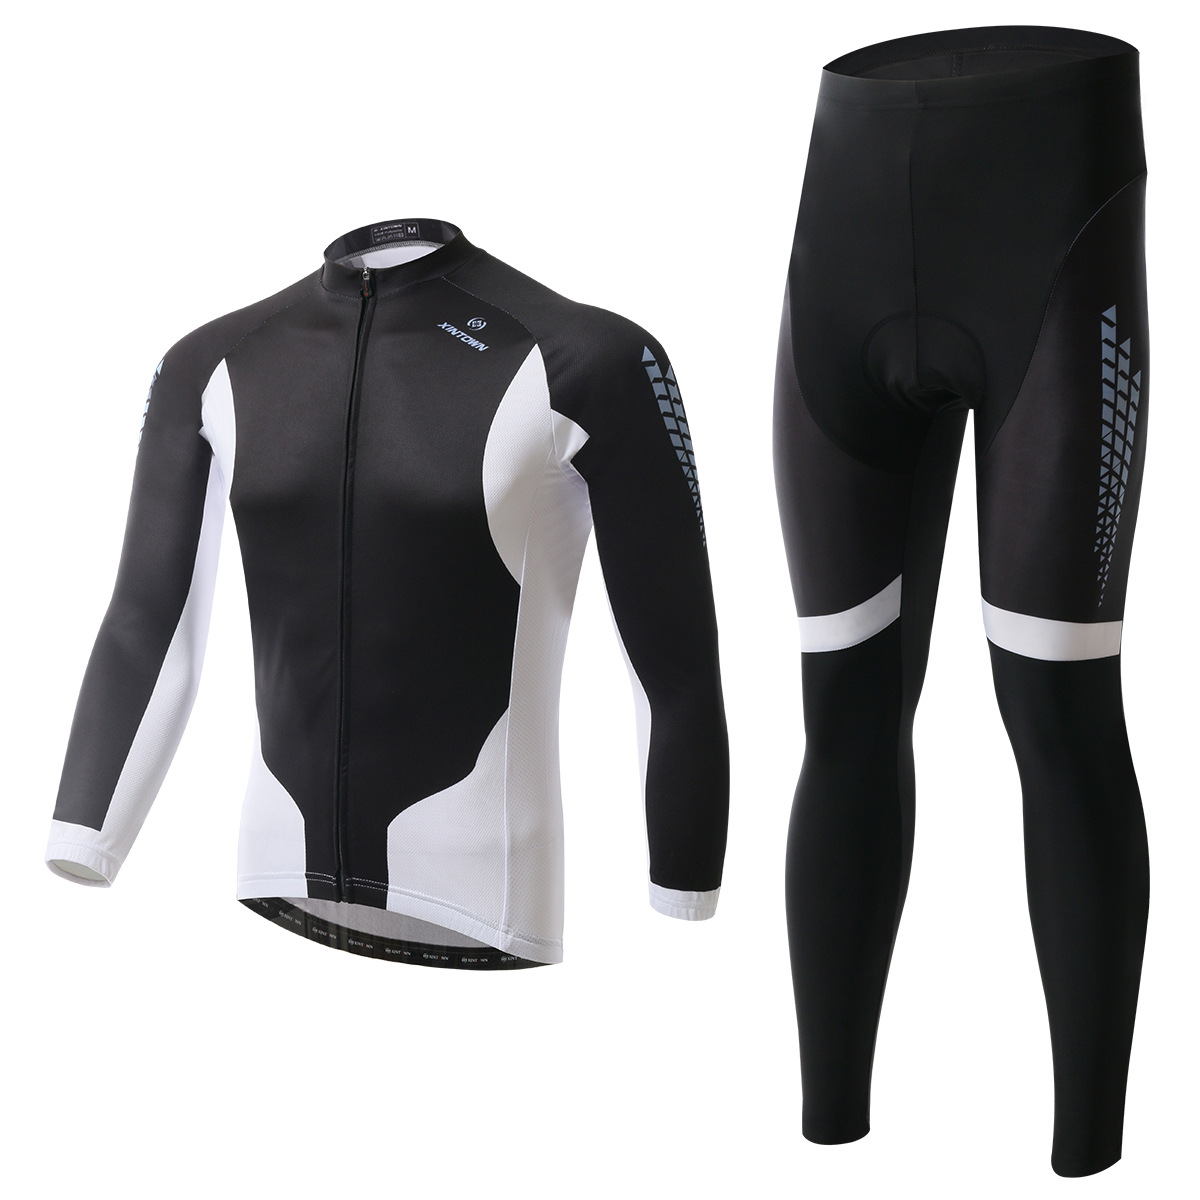 XINTOWN black Jazz long sleeve cycling wear bike riding jersey spring autumn moisture perspiration quick-drying clothes pants